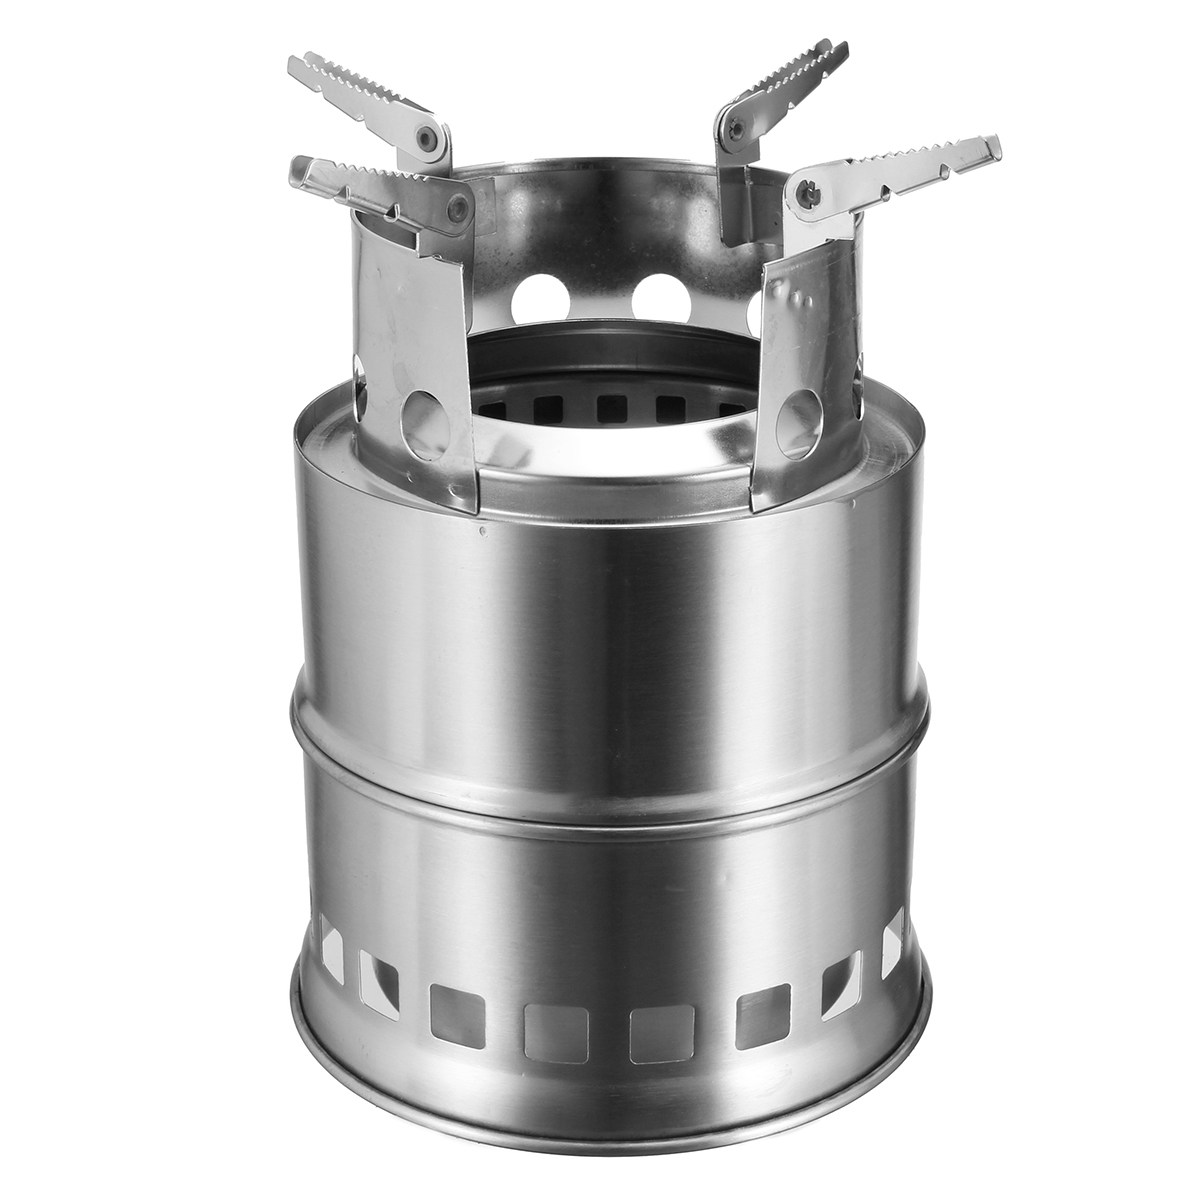 Outdoor Stainless steel Wood Gas Backpacking Emergency Survival Burning Camping Stove Portable with Mesh bag